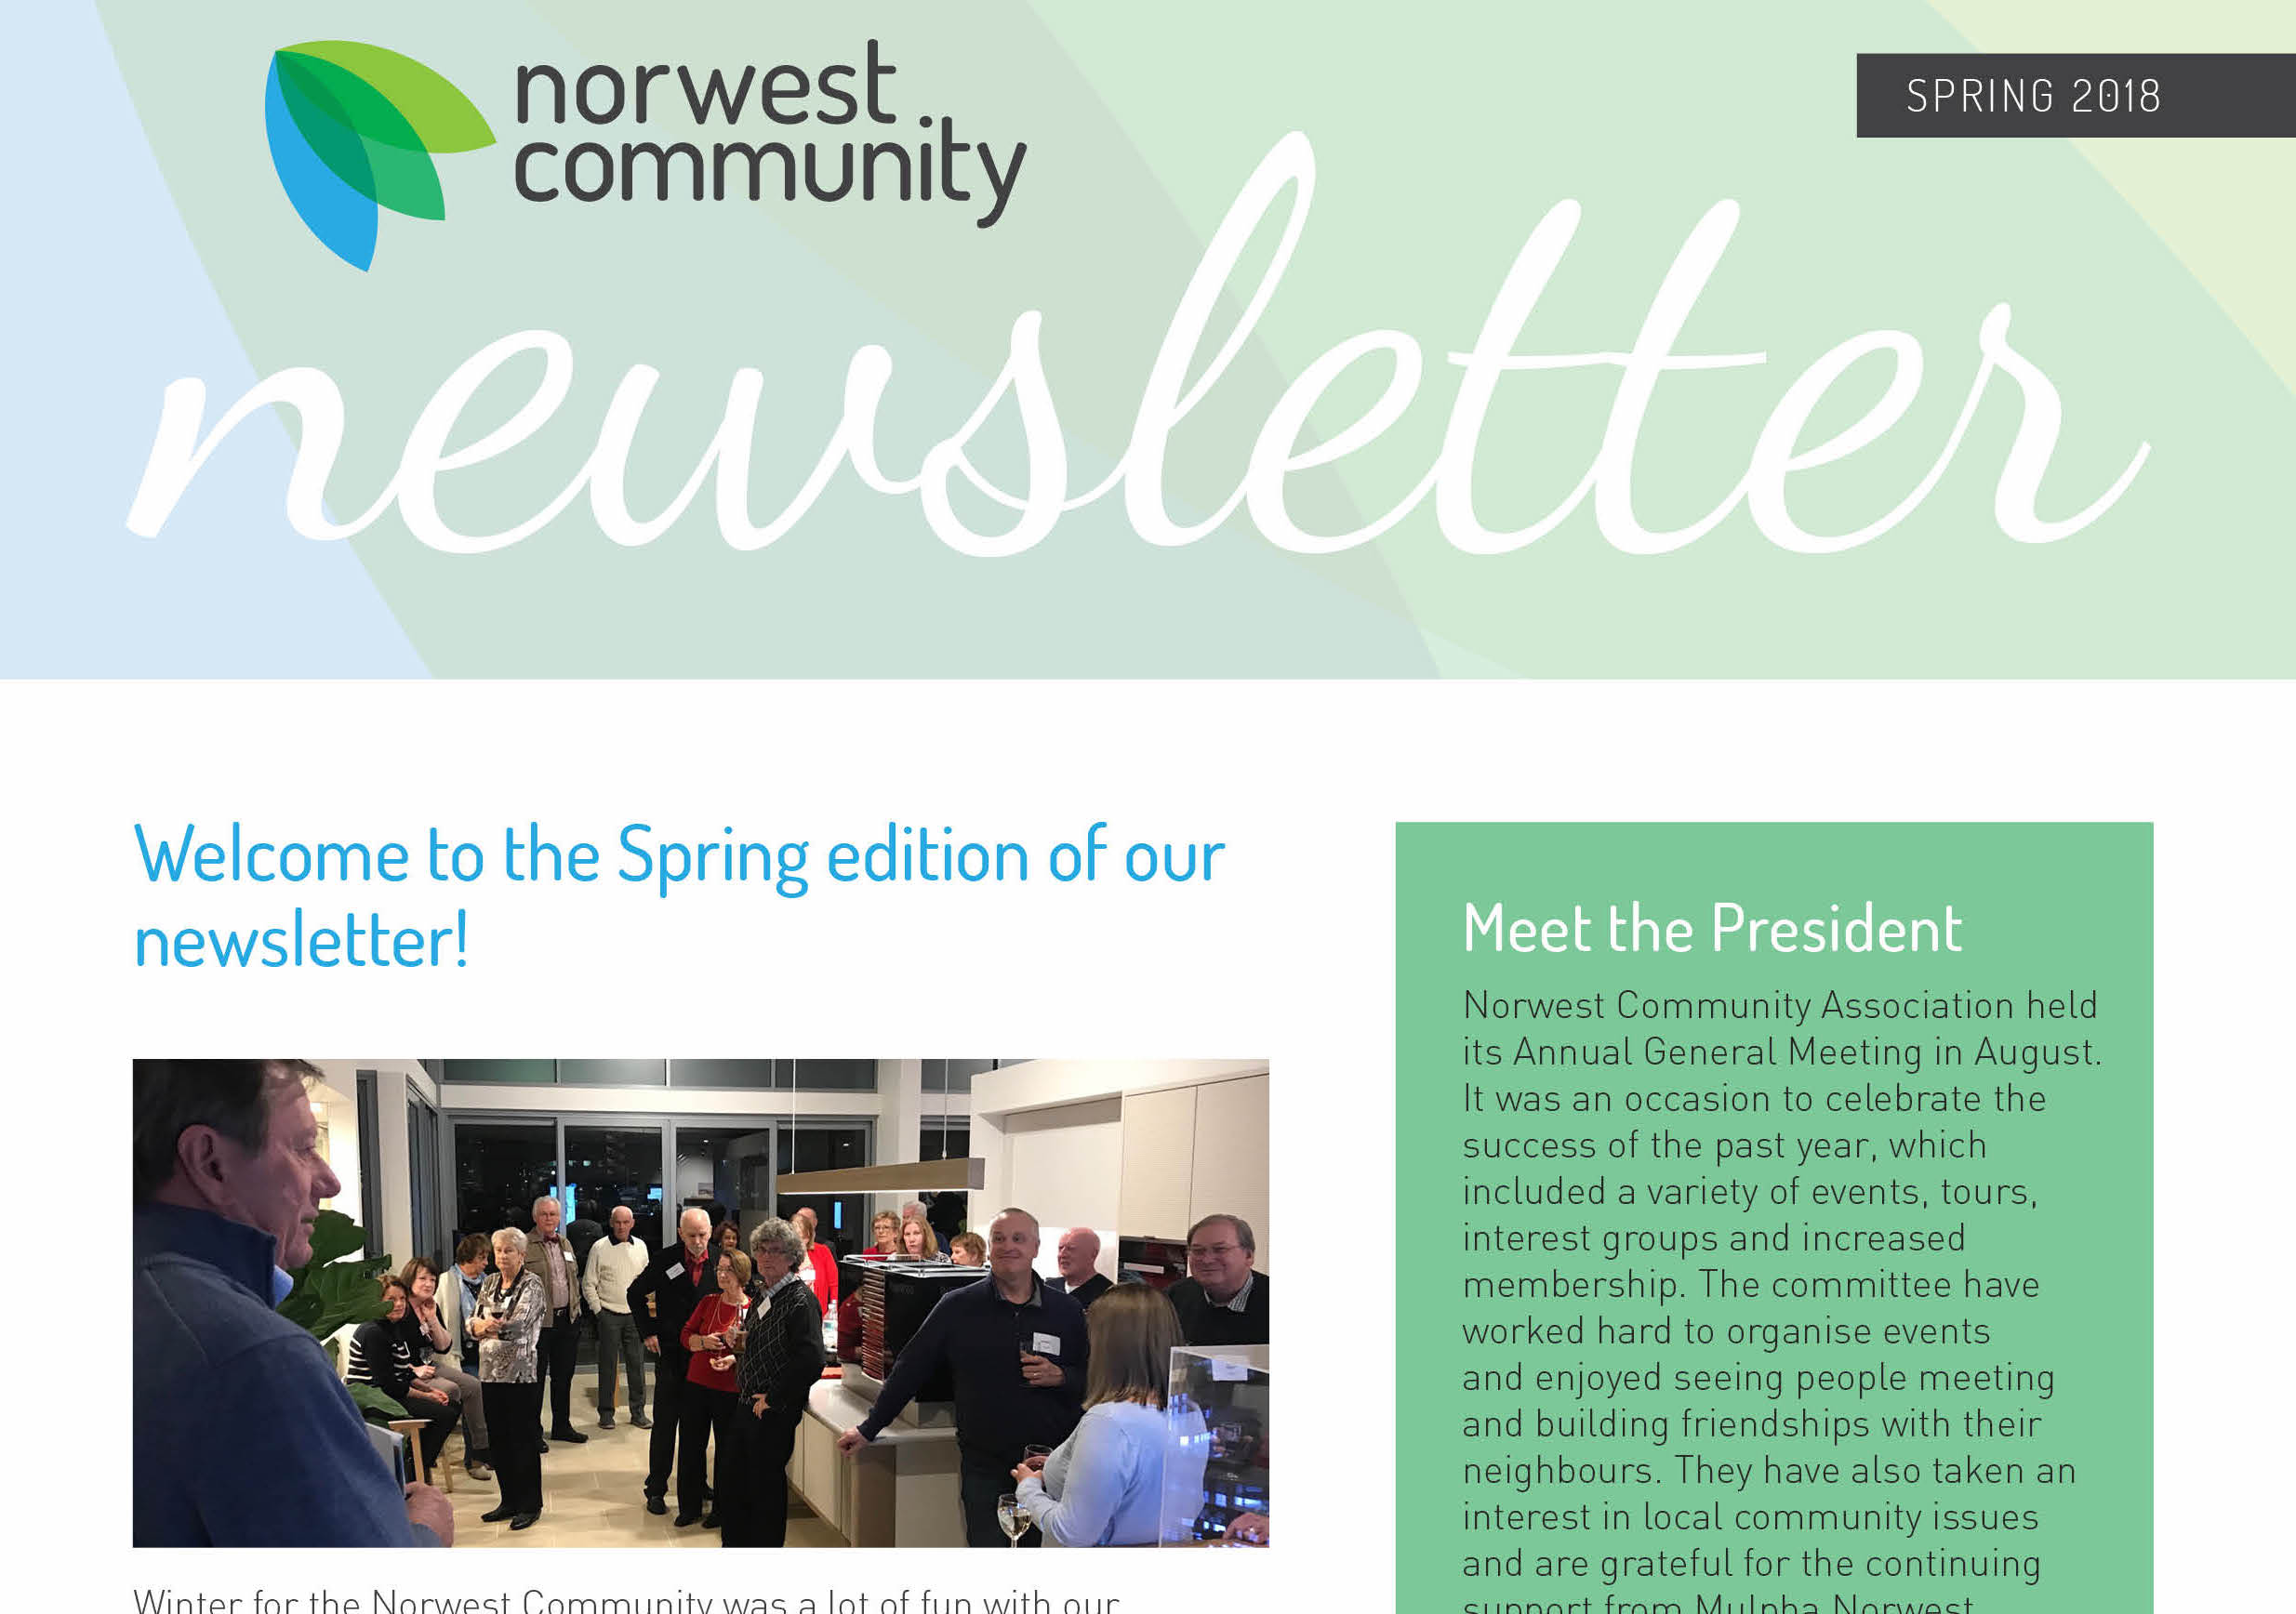 NC1014 Newsletter Spring 2018 web1 copy